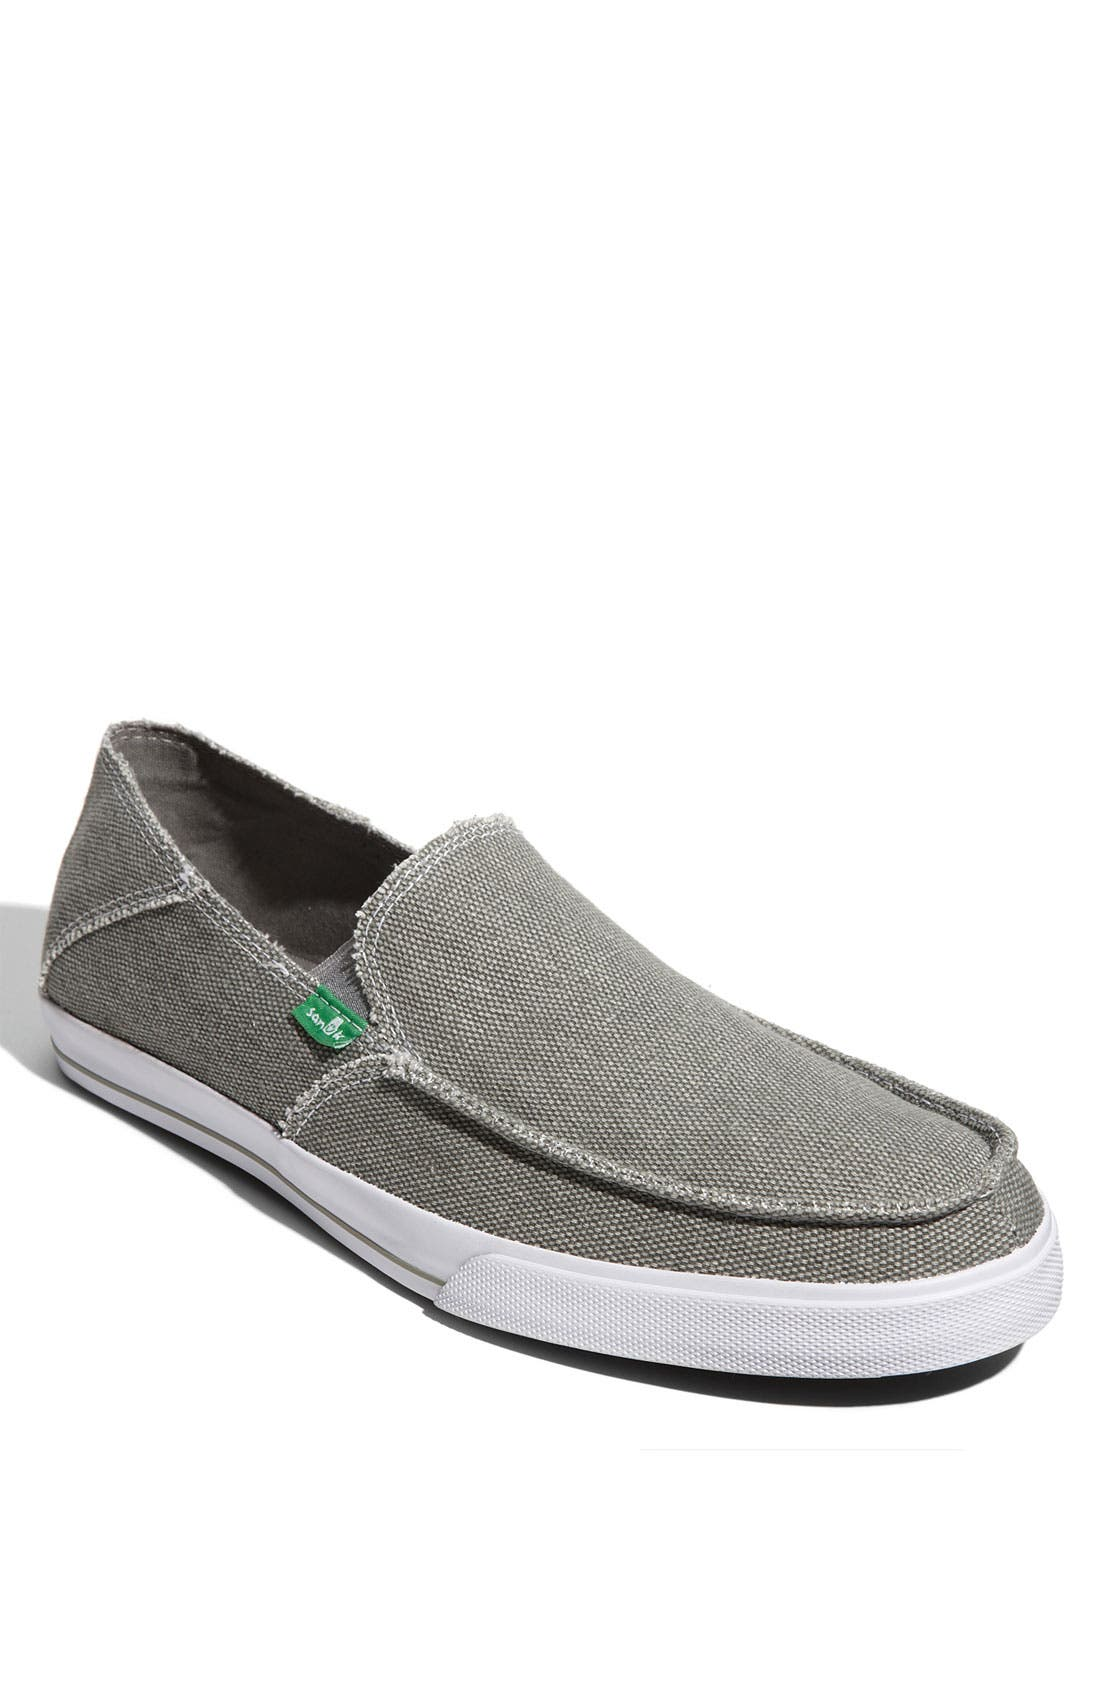 Main Image - Sanuk 'Standard' Slip-On